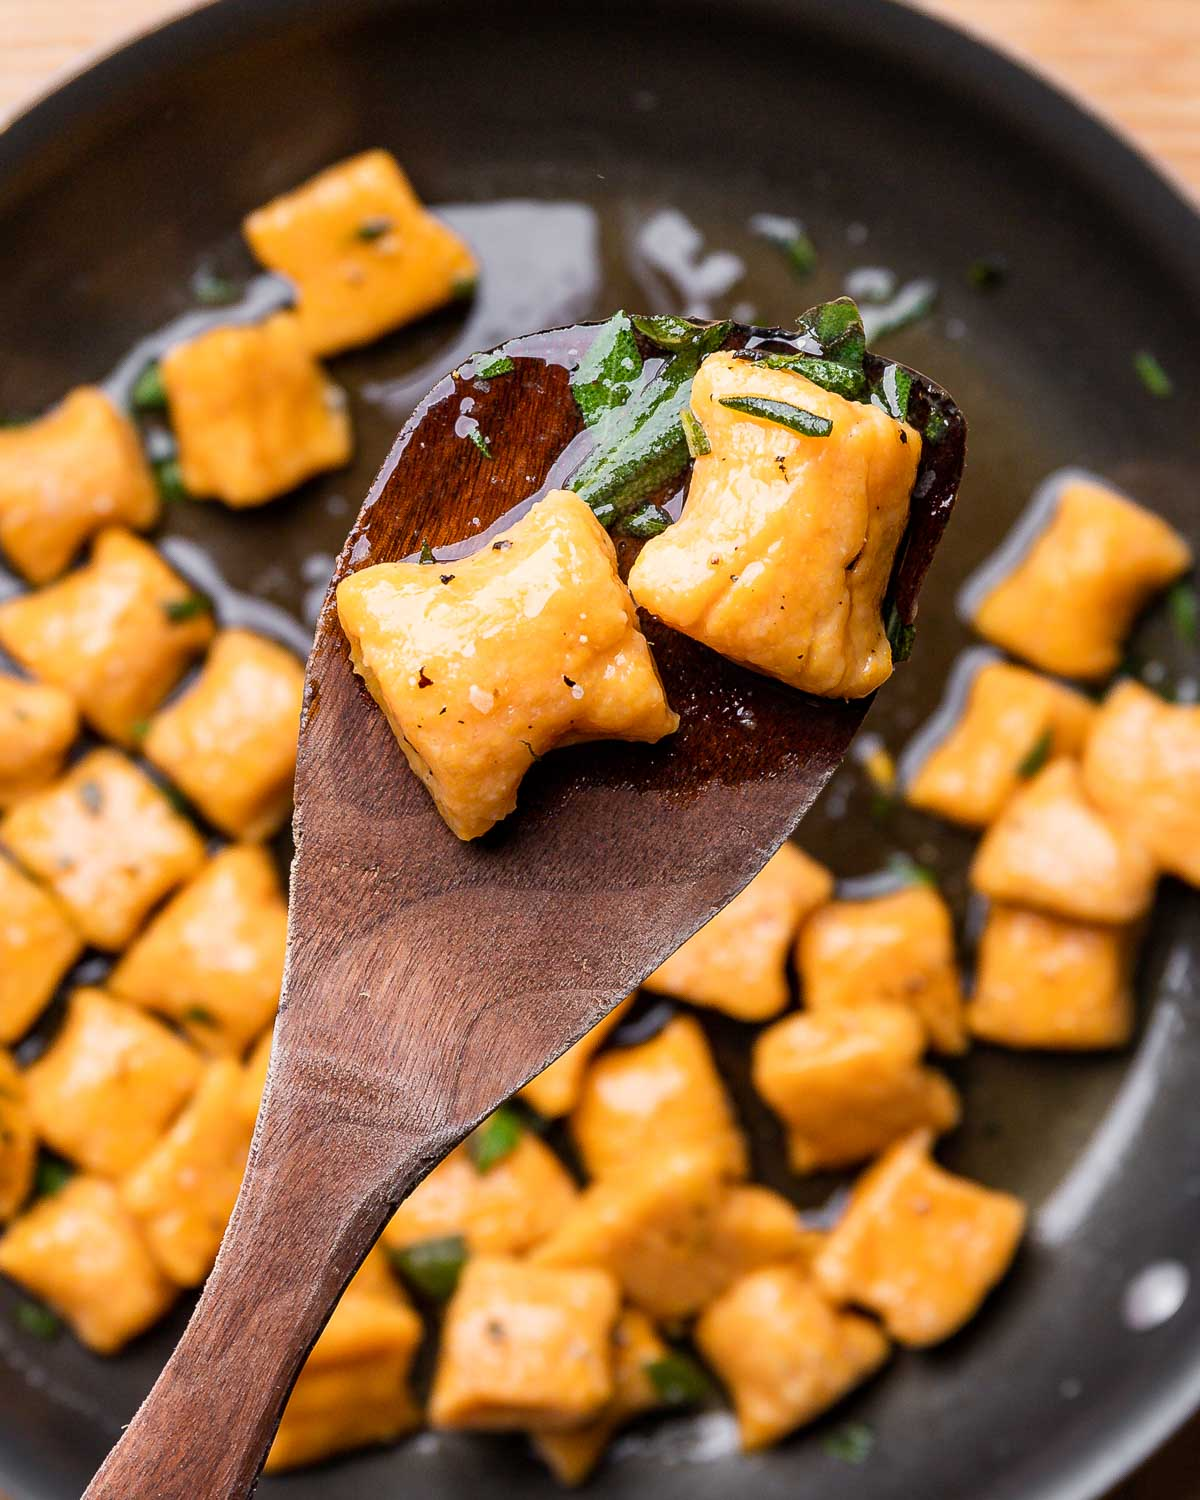 Wooden spoon holding 2 cooked sweet potato gnocchi.